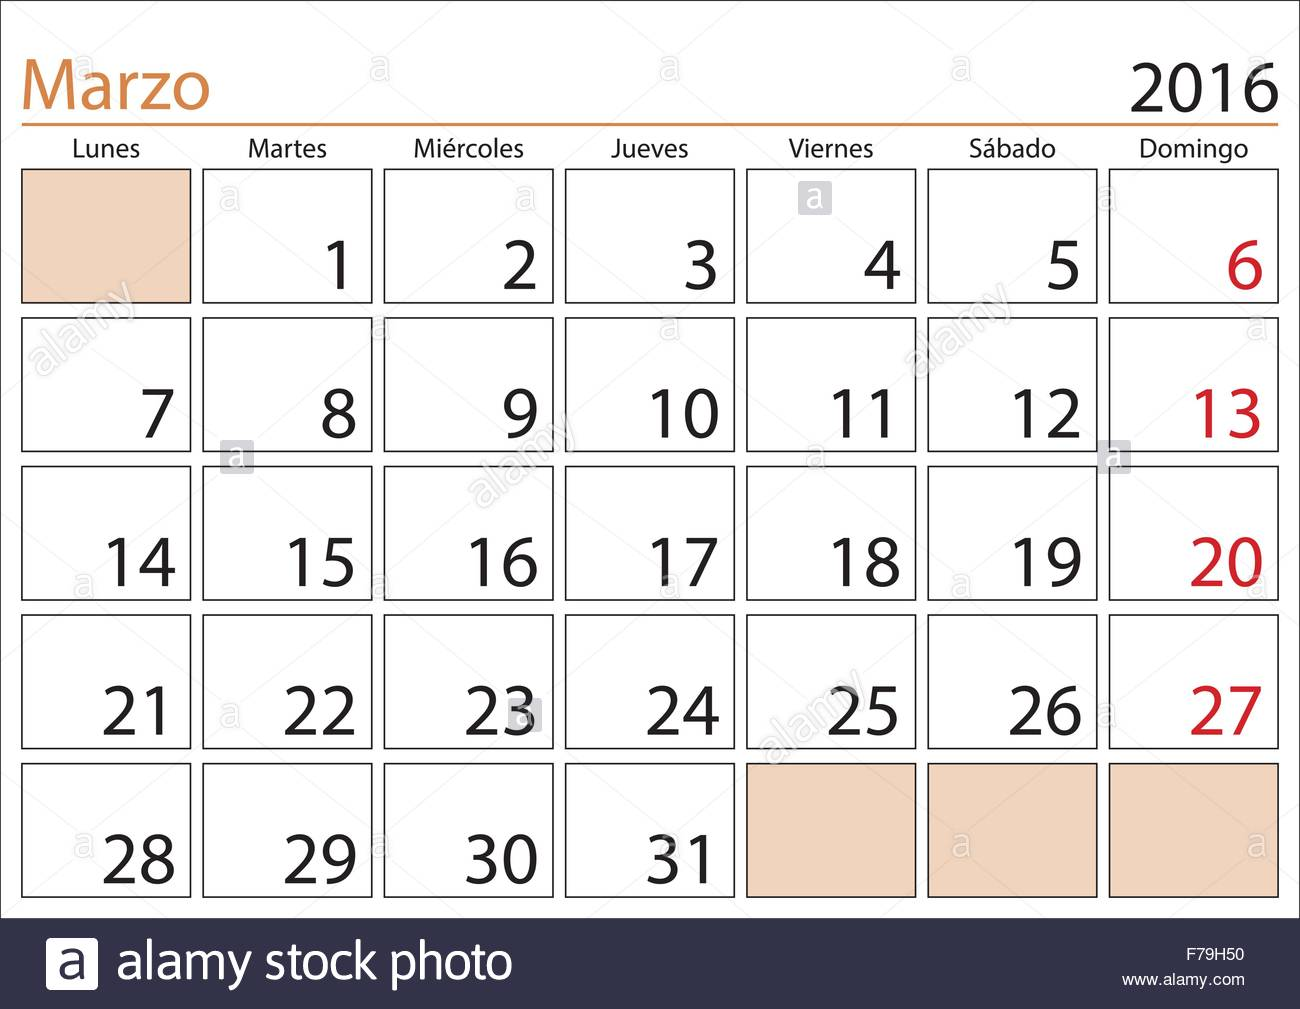 foto de March month in a year 2016 calendar in spanish Marzo 2016 Stock Vector Art & Illustration